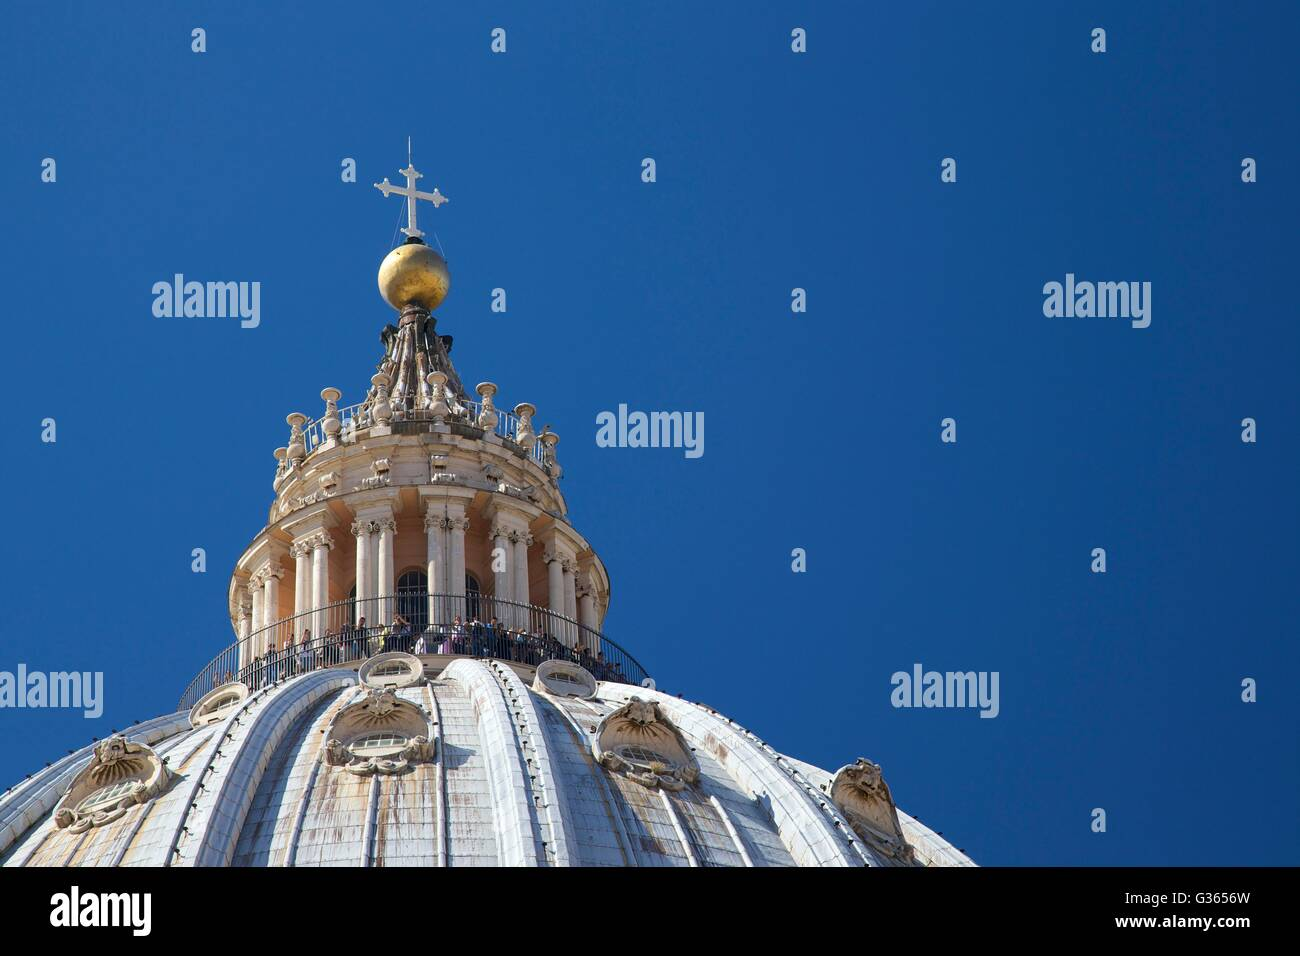 Exterior rooftop view of dome of St Peter's Cathedral, Vatican, Rome, Italy, Europe - Stock Image